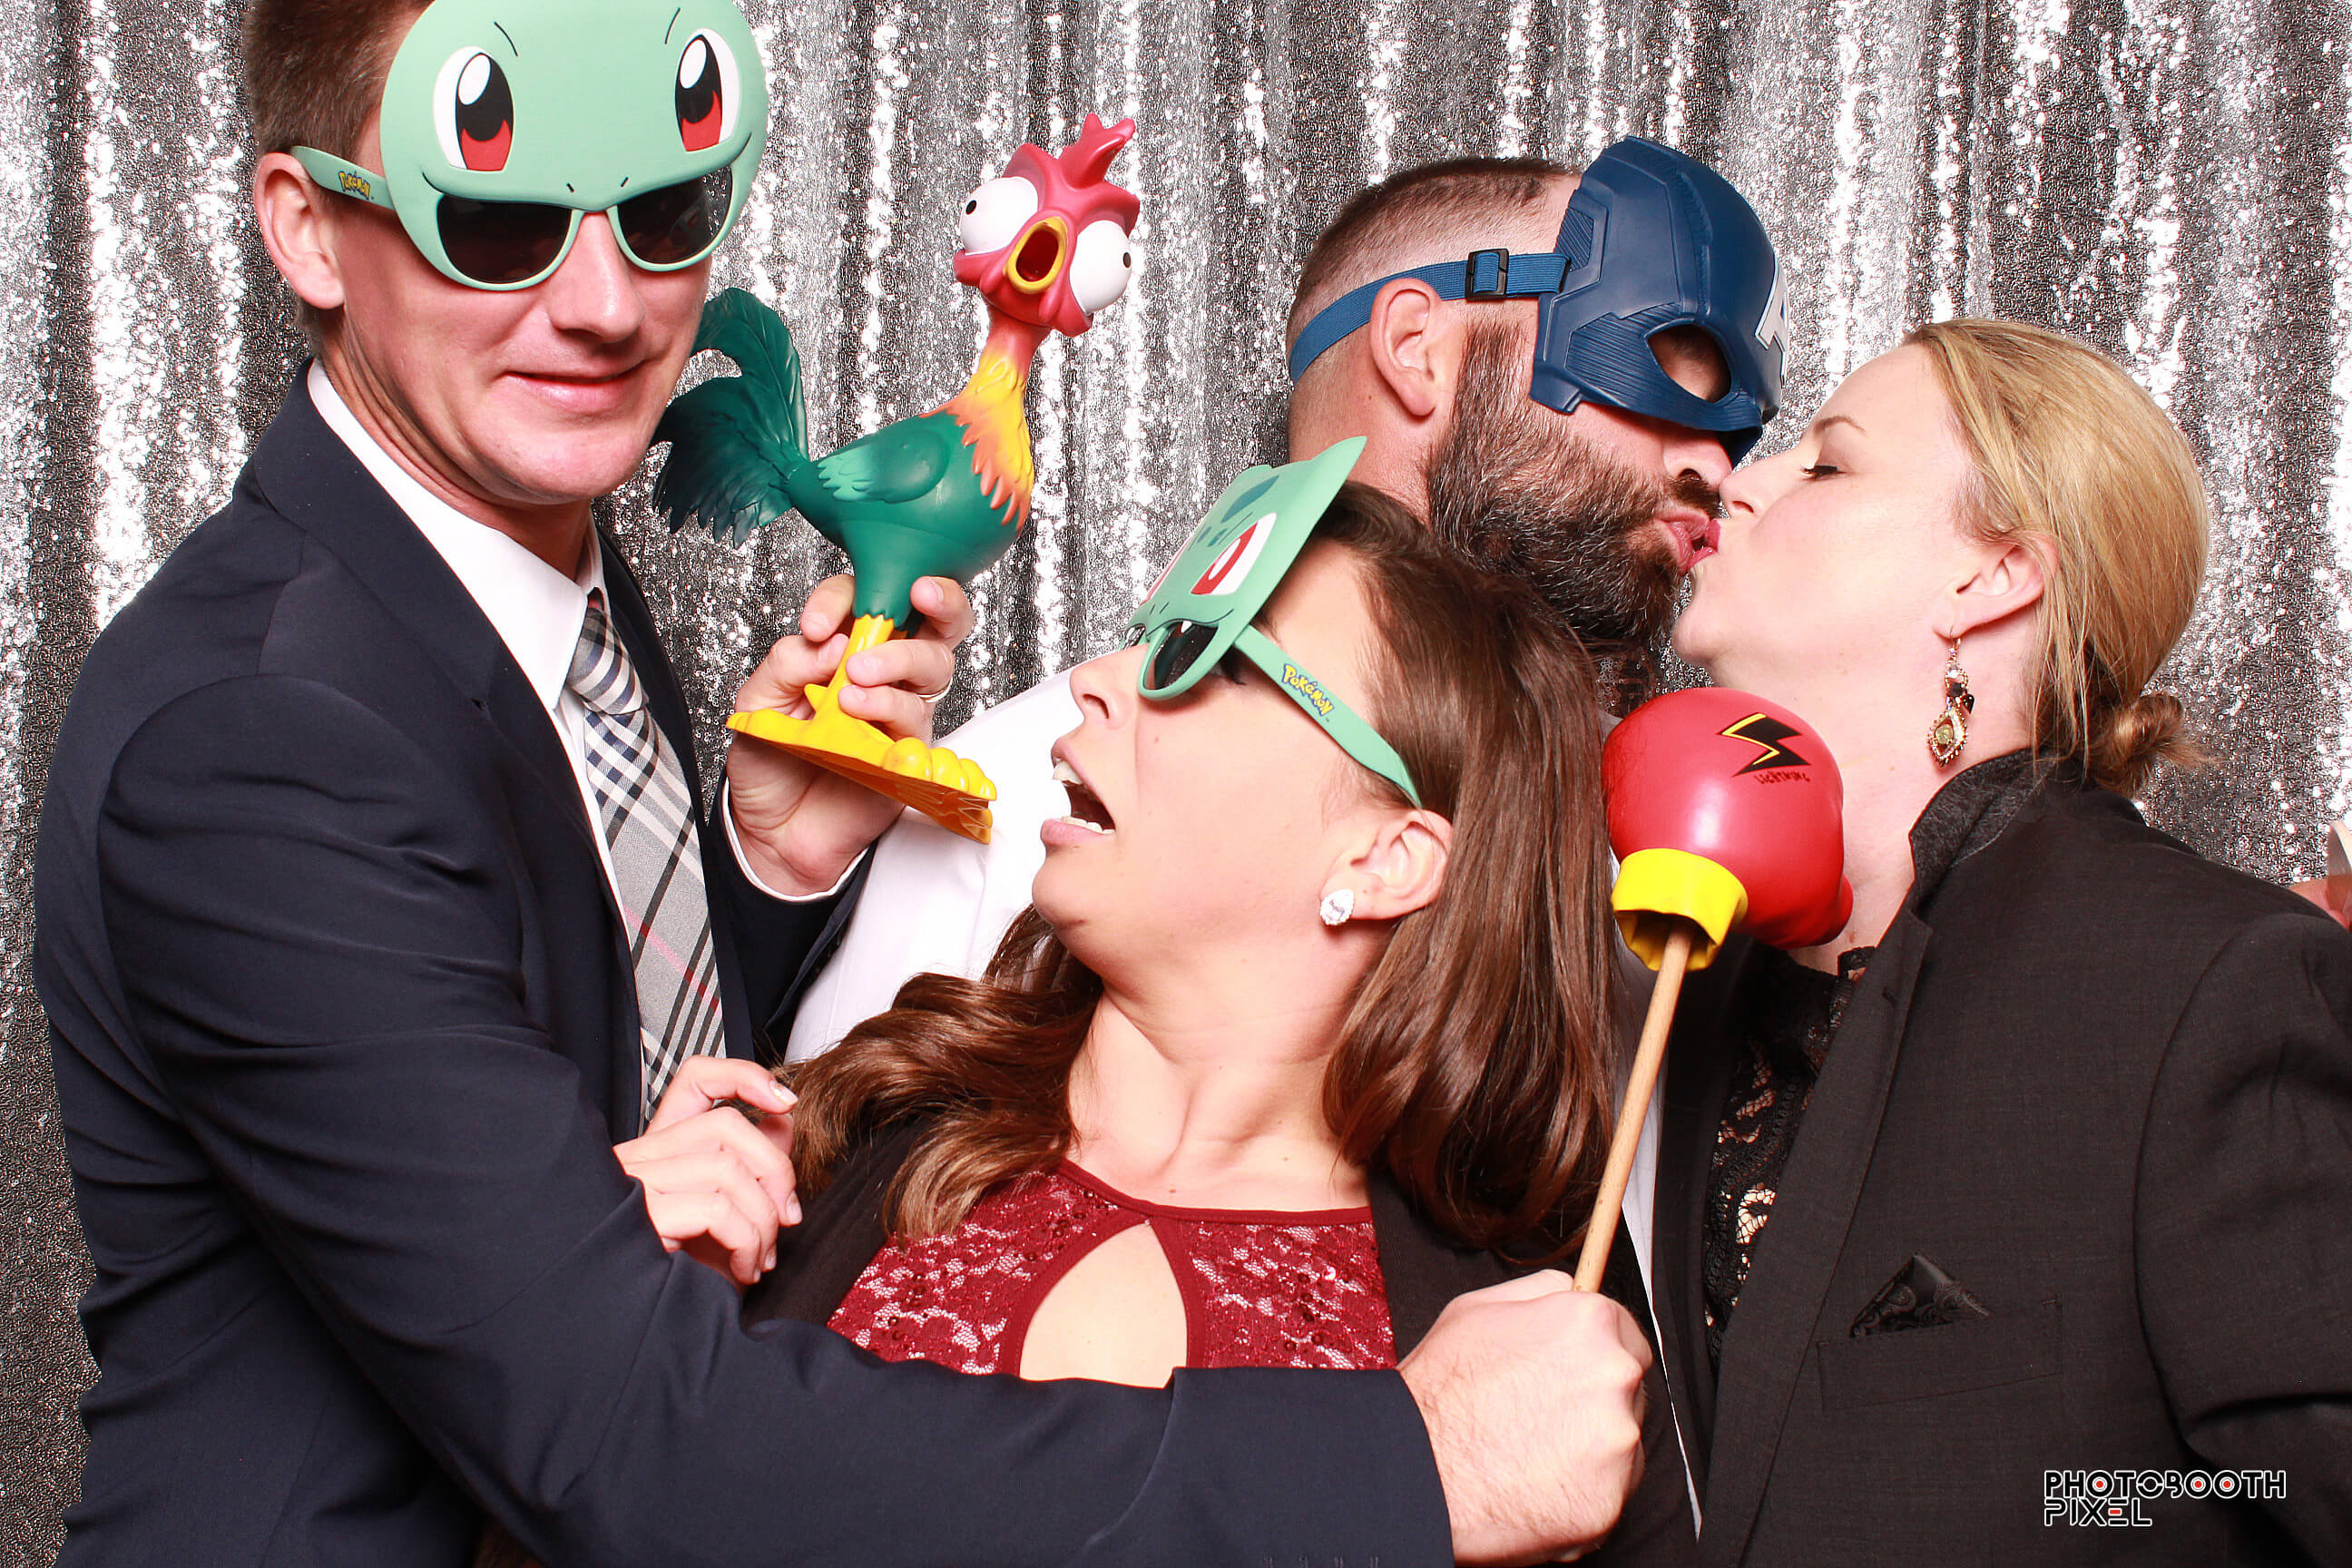 photo booth rental the white room st augustine fl